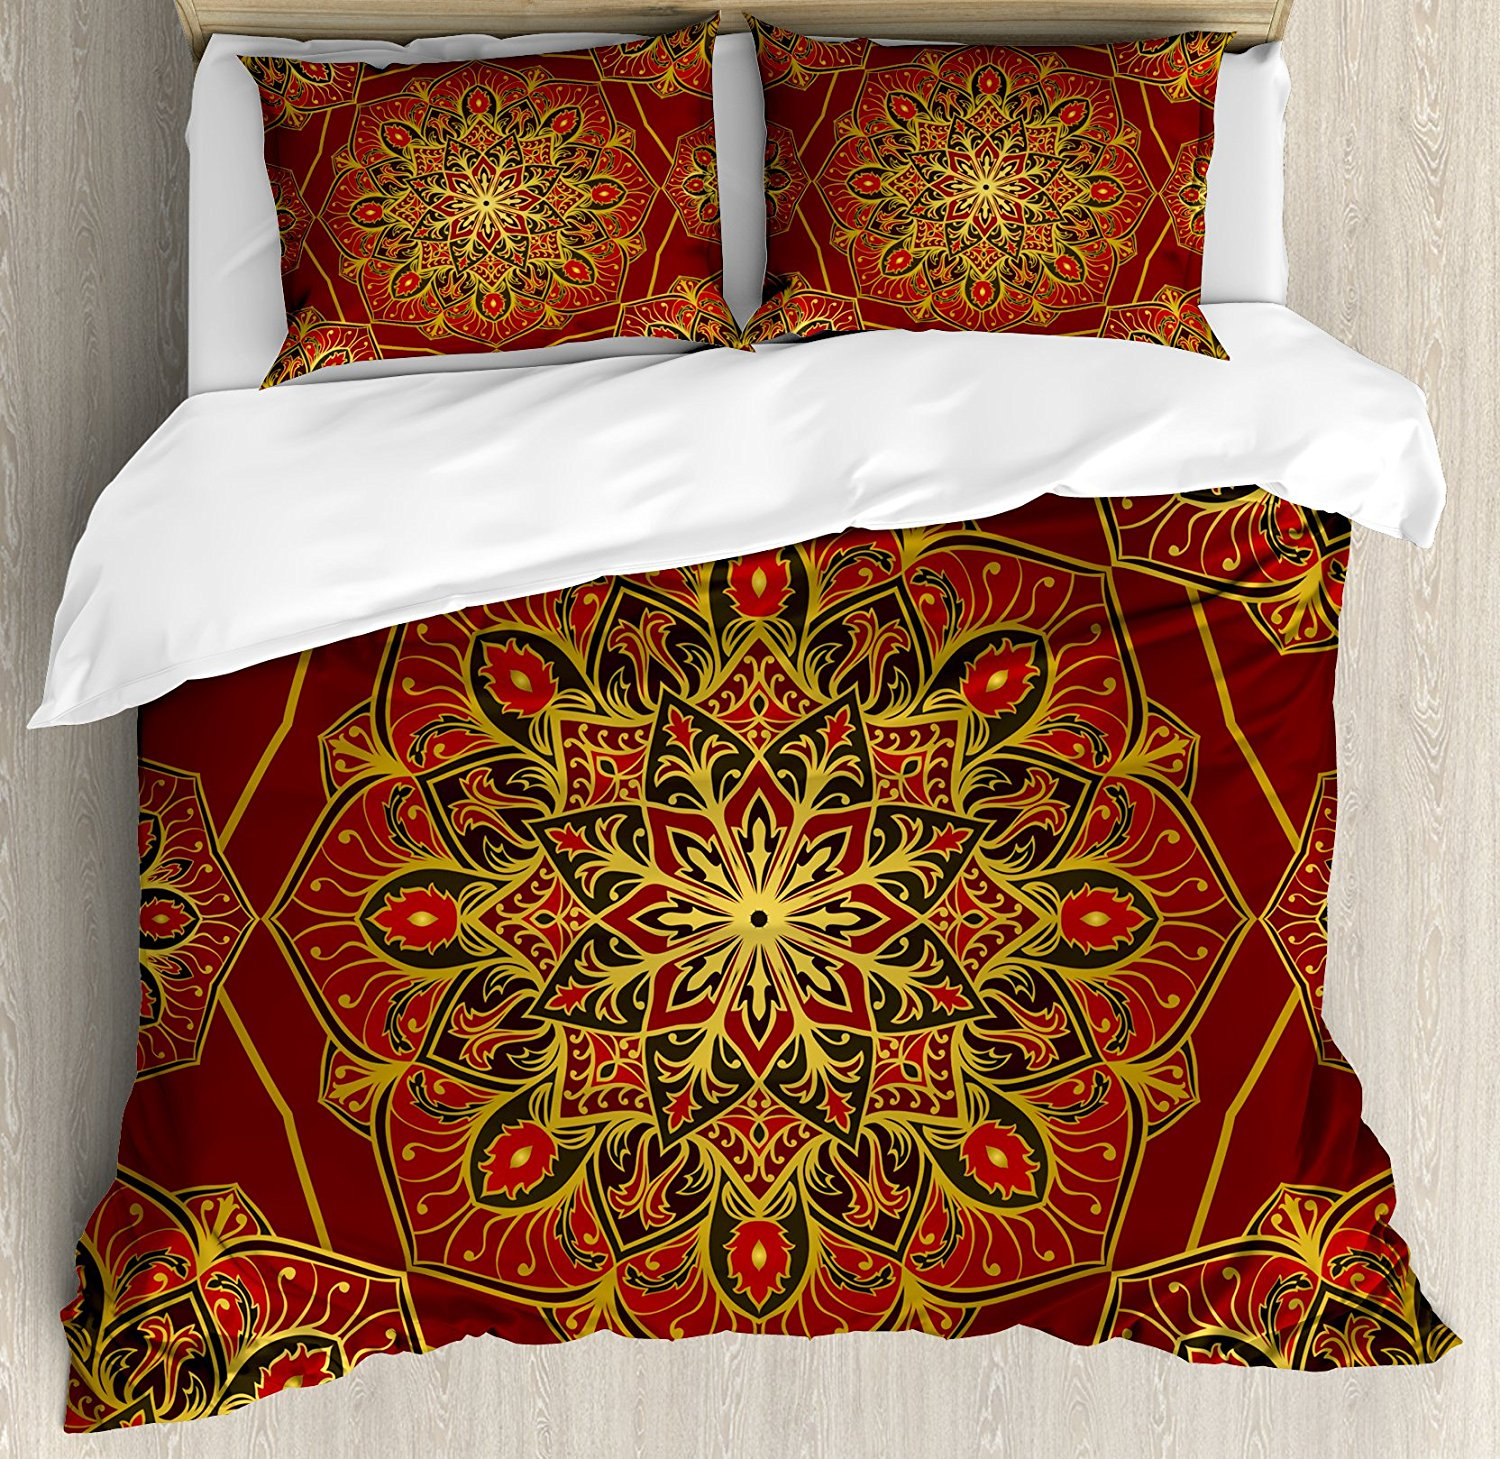 Maroon Duvet Cover Set Rich Colorful Ornament Symbol of Cosmos in Arabic Style Medieval Artistic 4 Piece Bedding Set